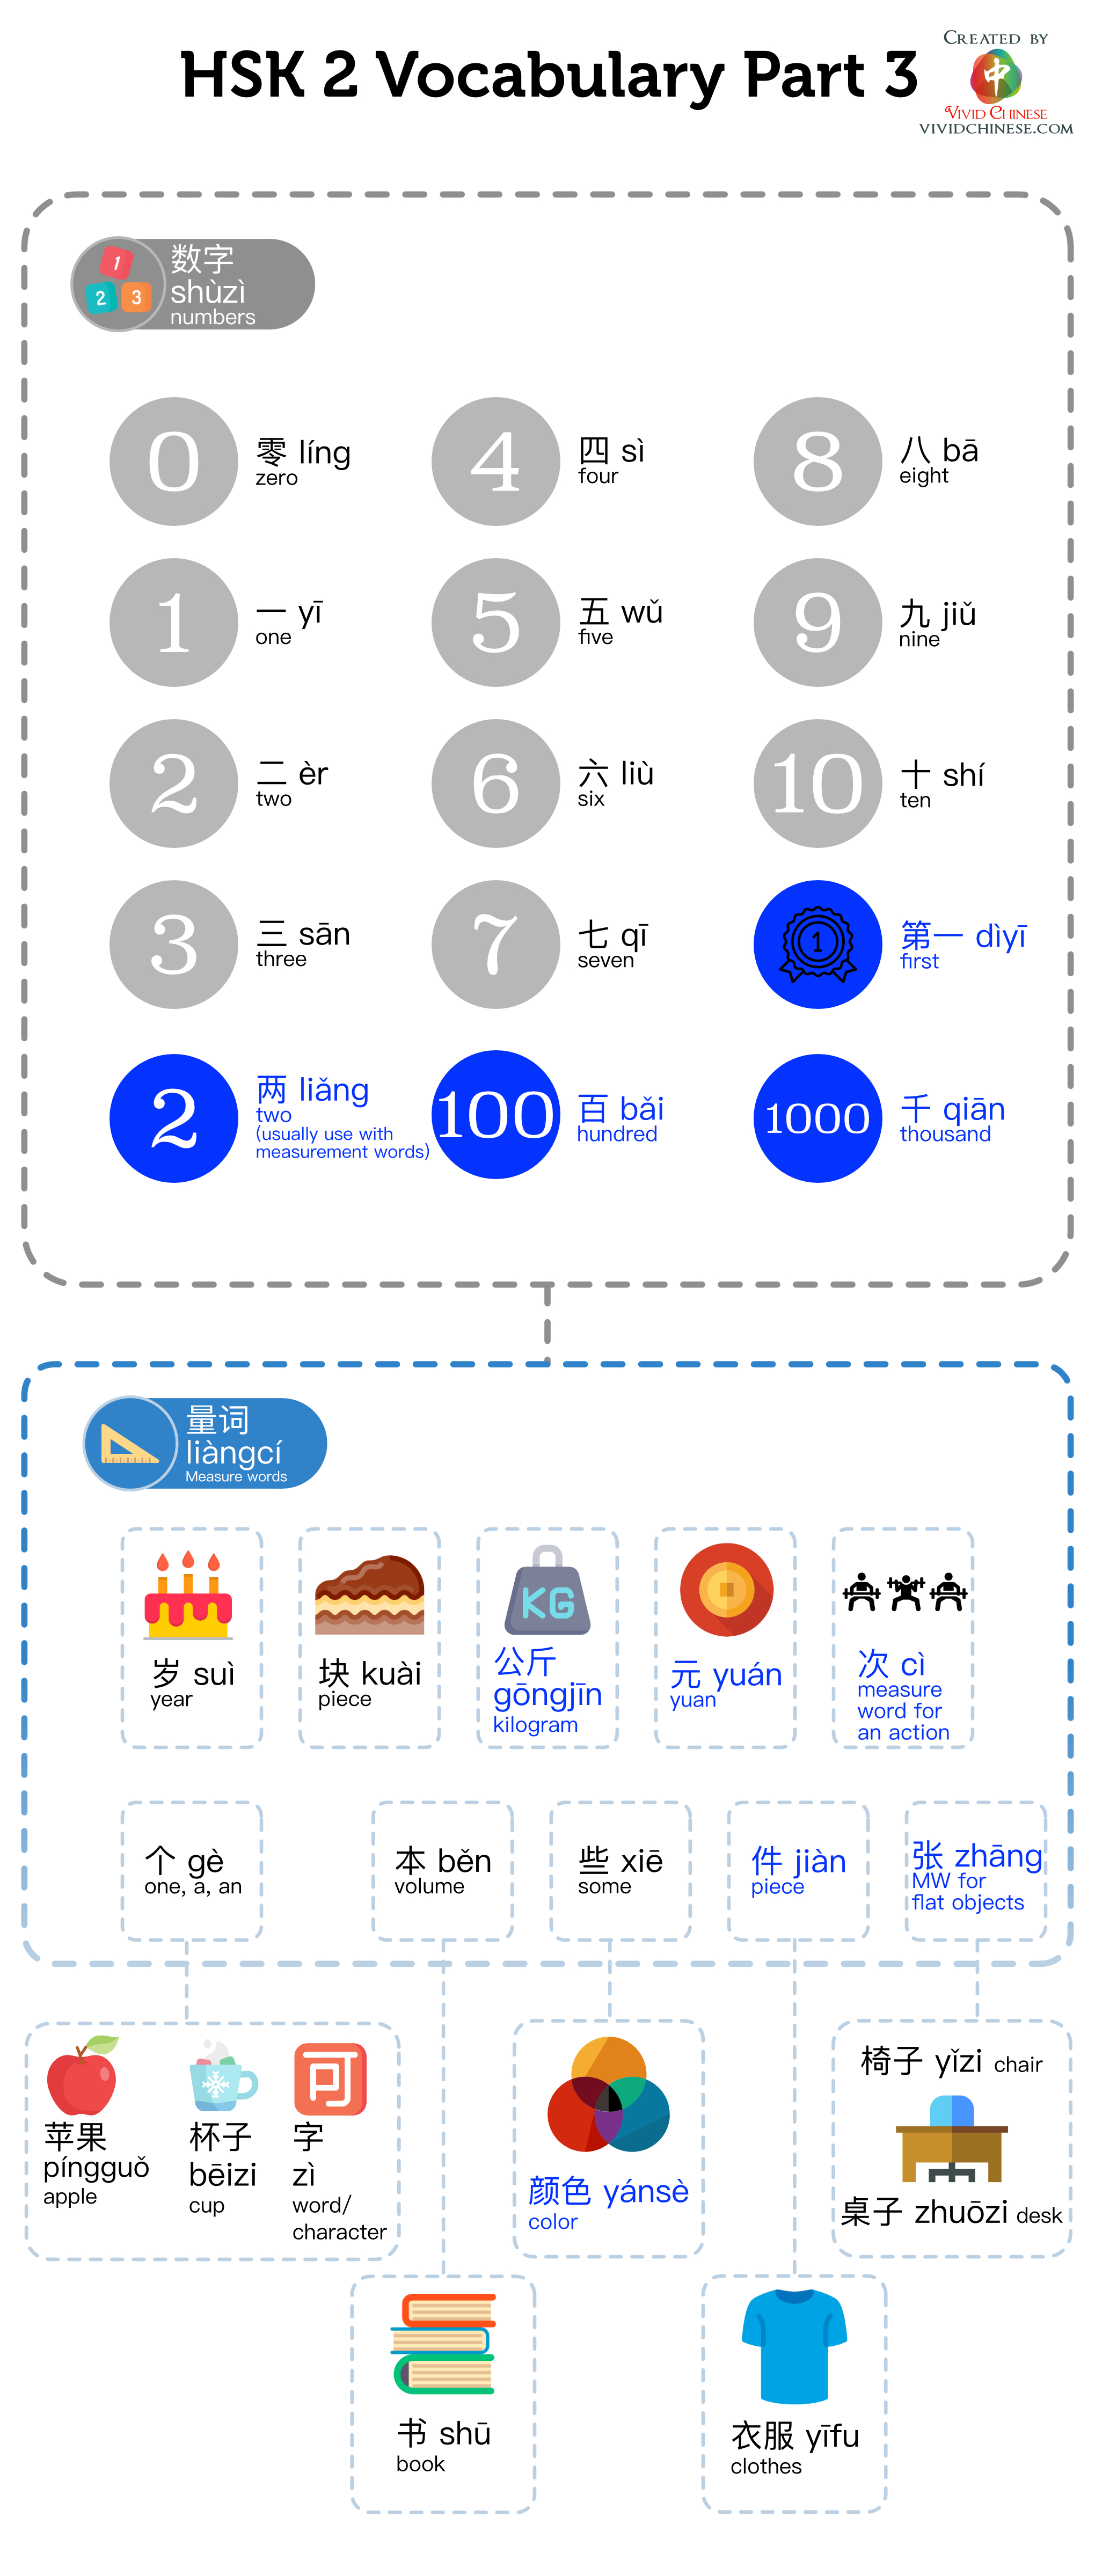 HSK 2 Vocabulary (Part 3) Infographic